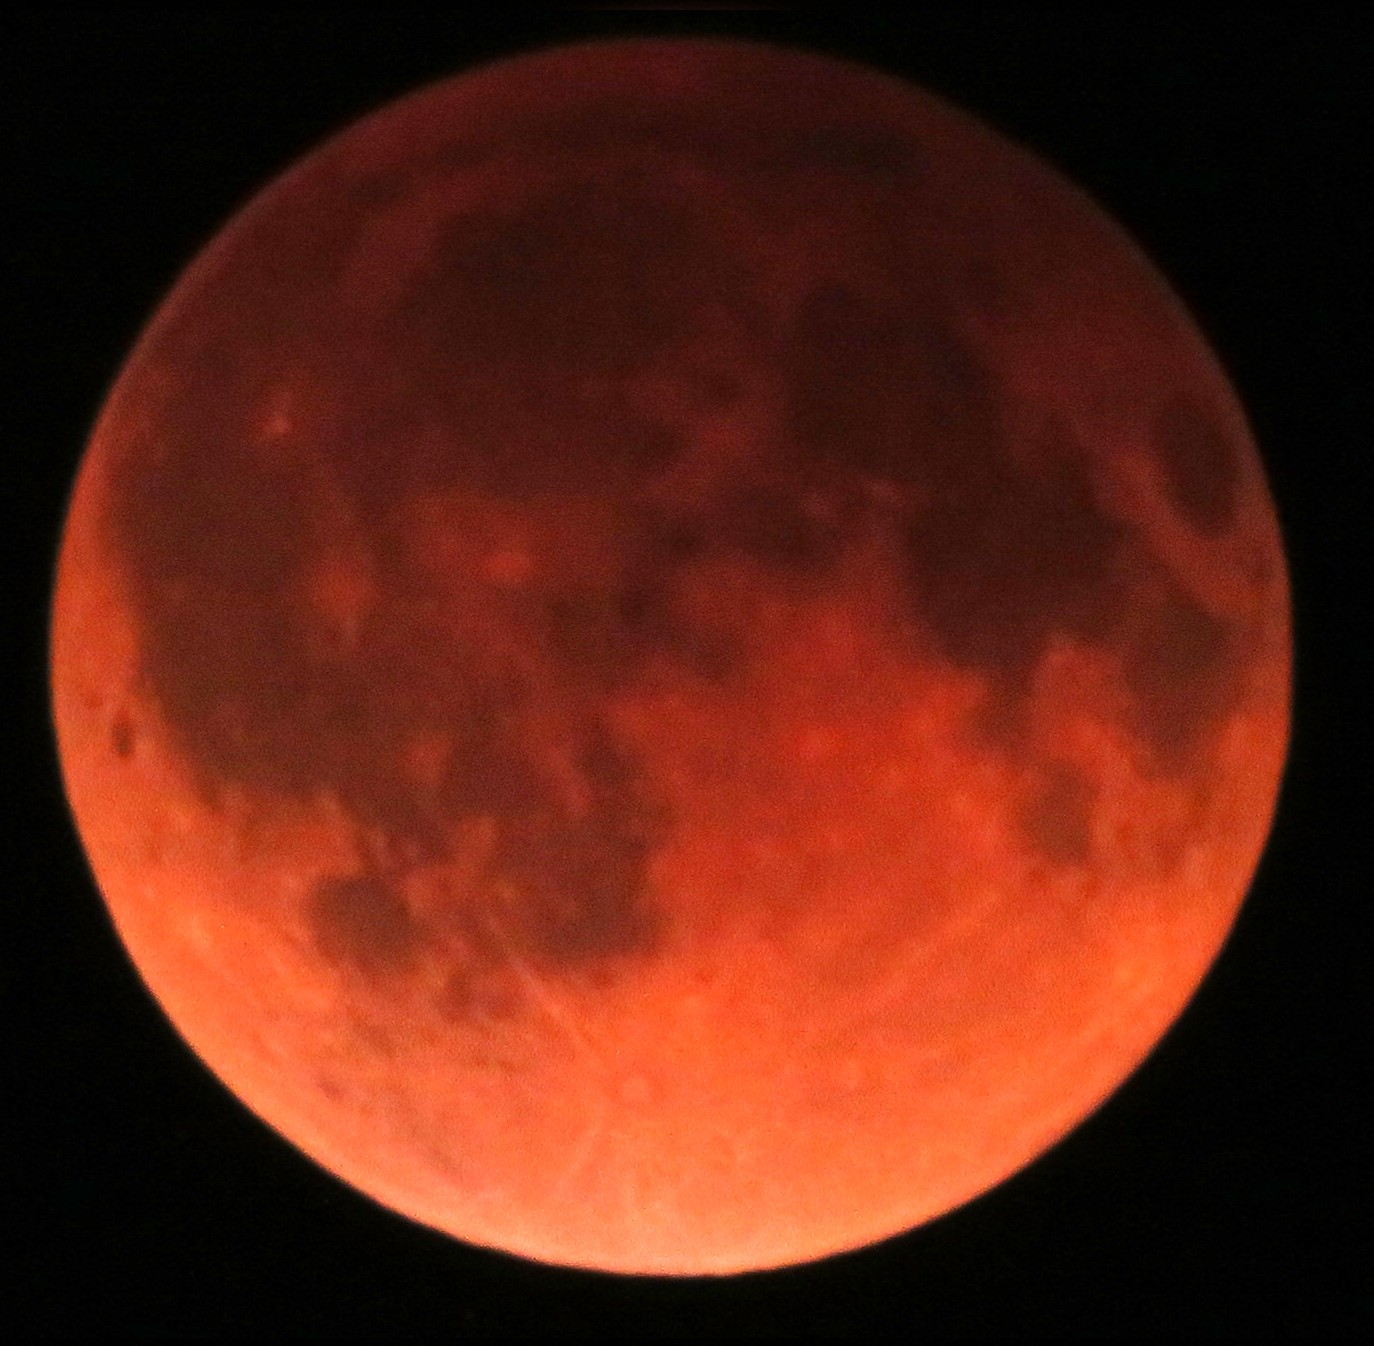 blood moon religious meaning - photo #18